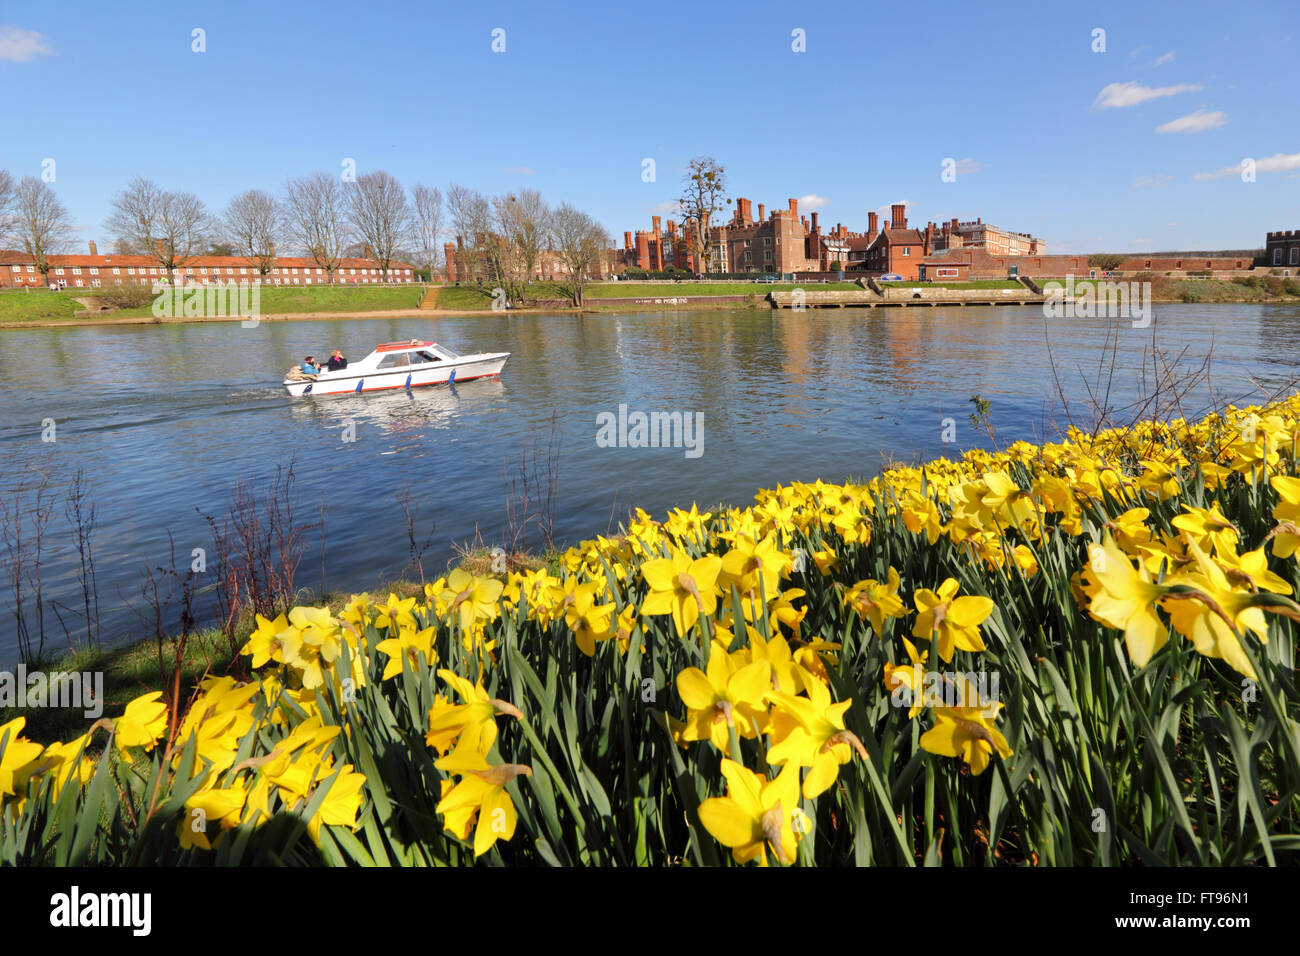 A swathe of yellow daffodils beside the Thames at Hampton Court, in the warm spring sunshine on Good Friday morning. Stock Photo